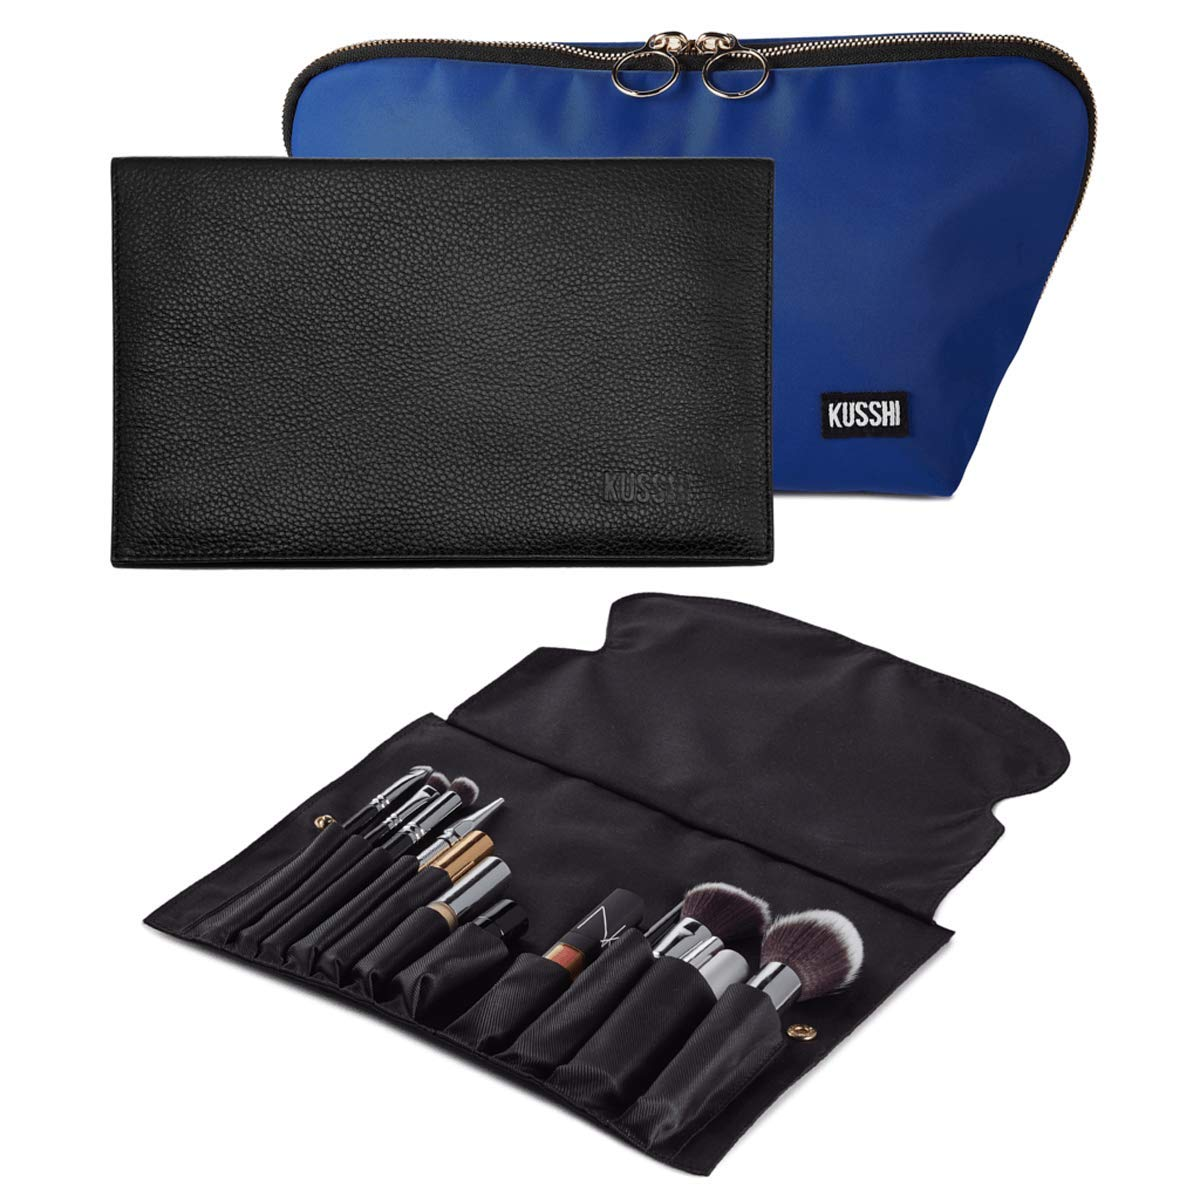 KUSSHI Full Set of Washable Travel Makeup & Cosmetic Bag with Brush Organizer and Cover